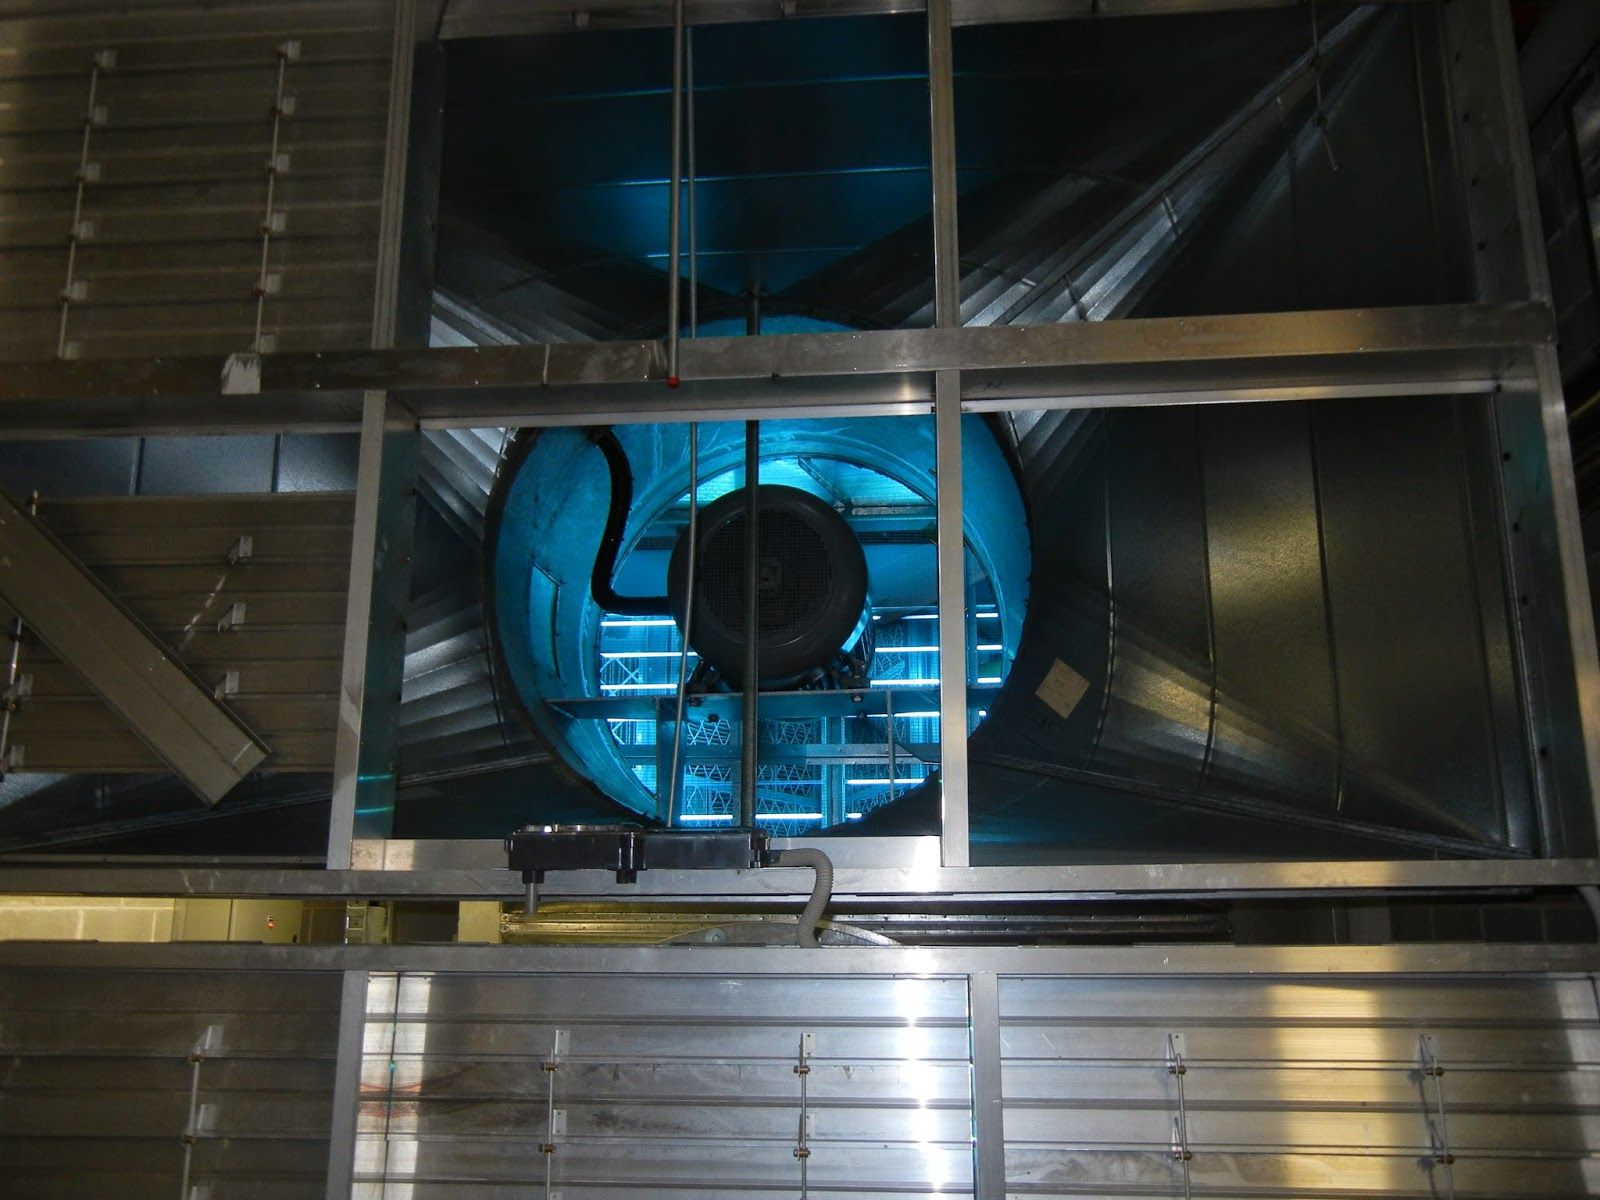 Uv Lights Installation Air Duct Cleaning Las Vegas